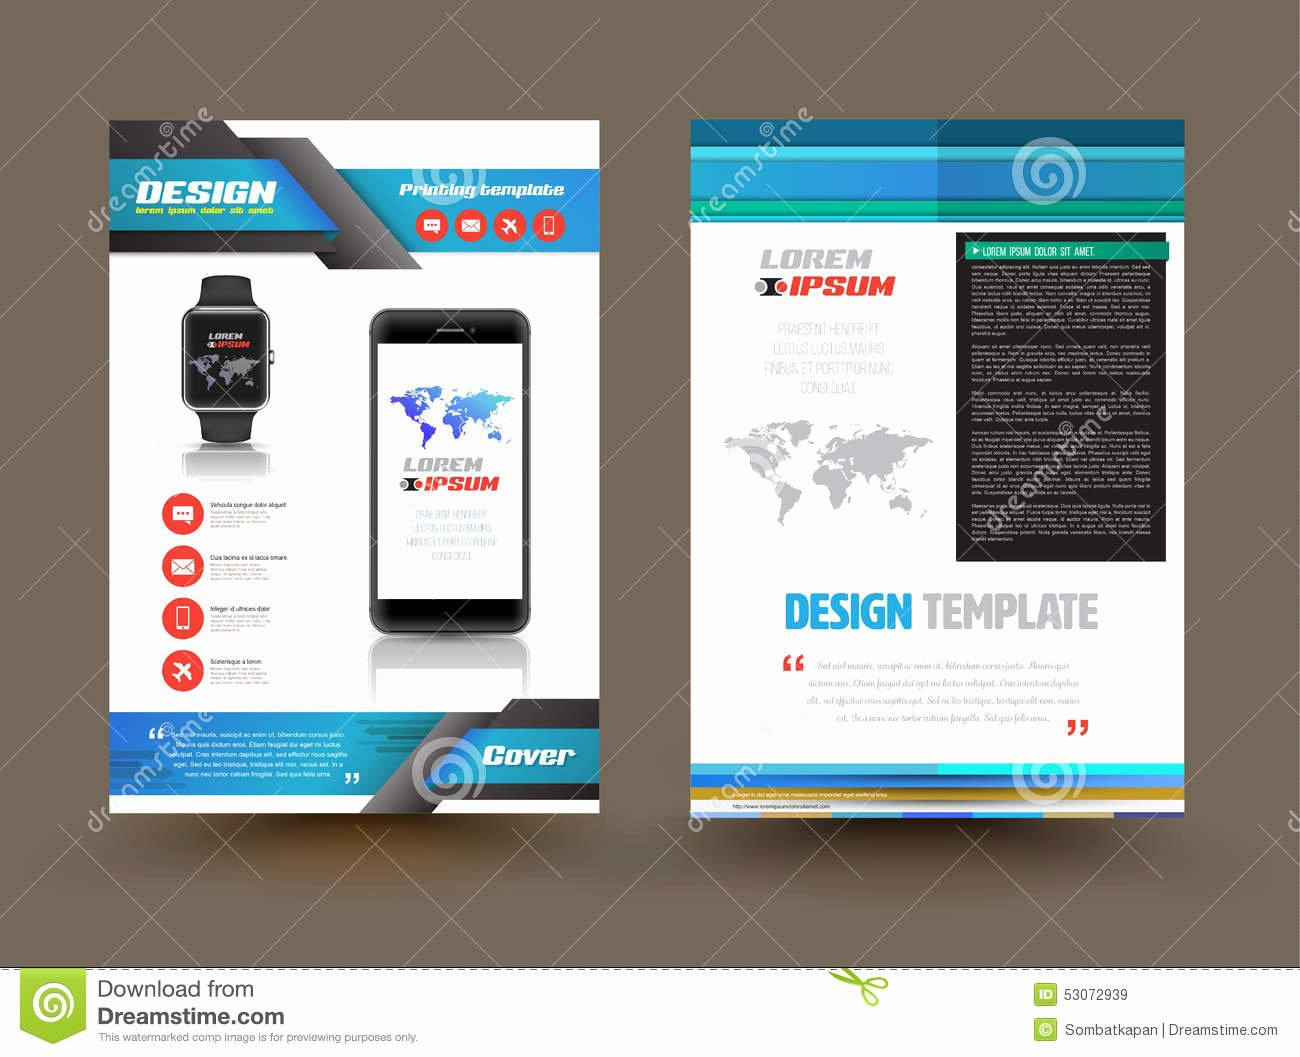 Product Catalog Design Template Unique Vector Brochure Template Design for Technology Product